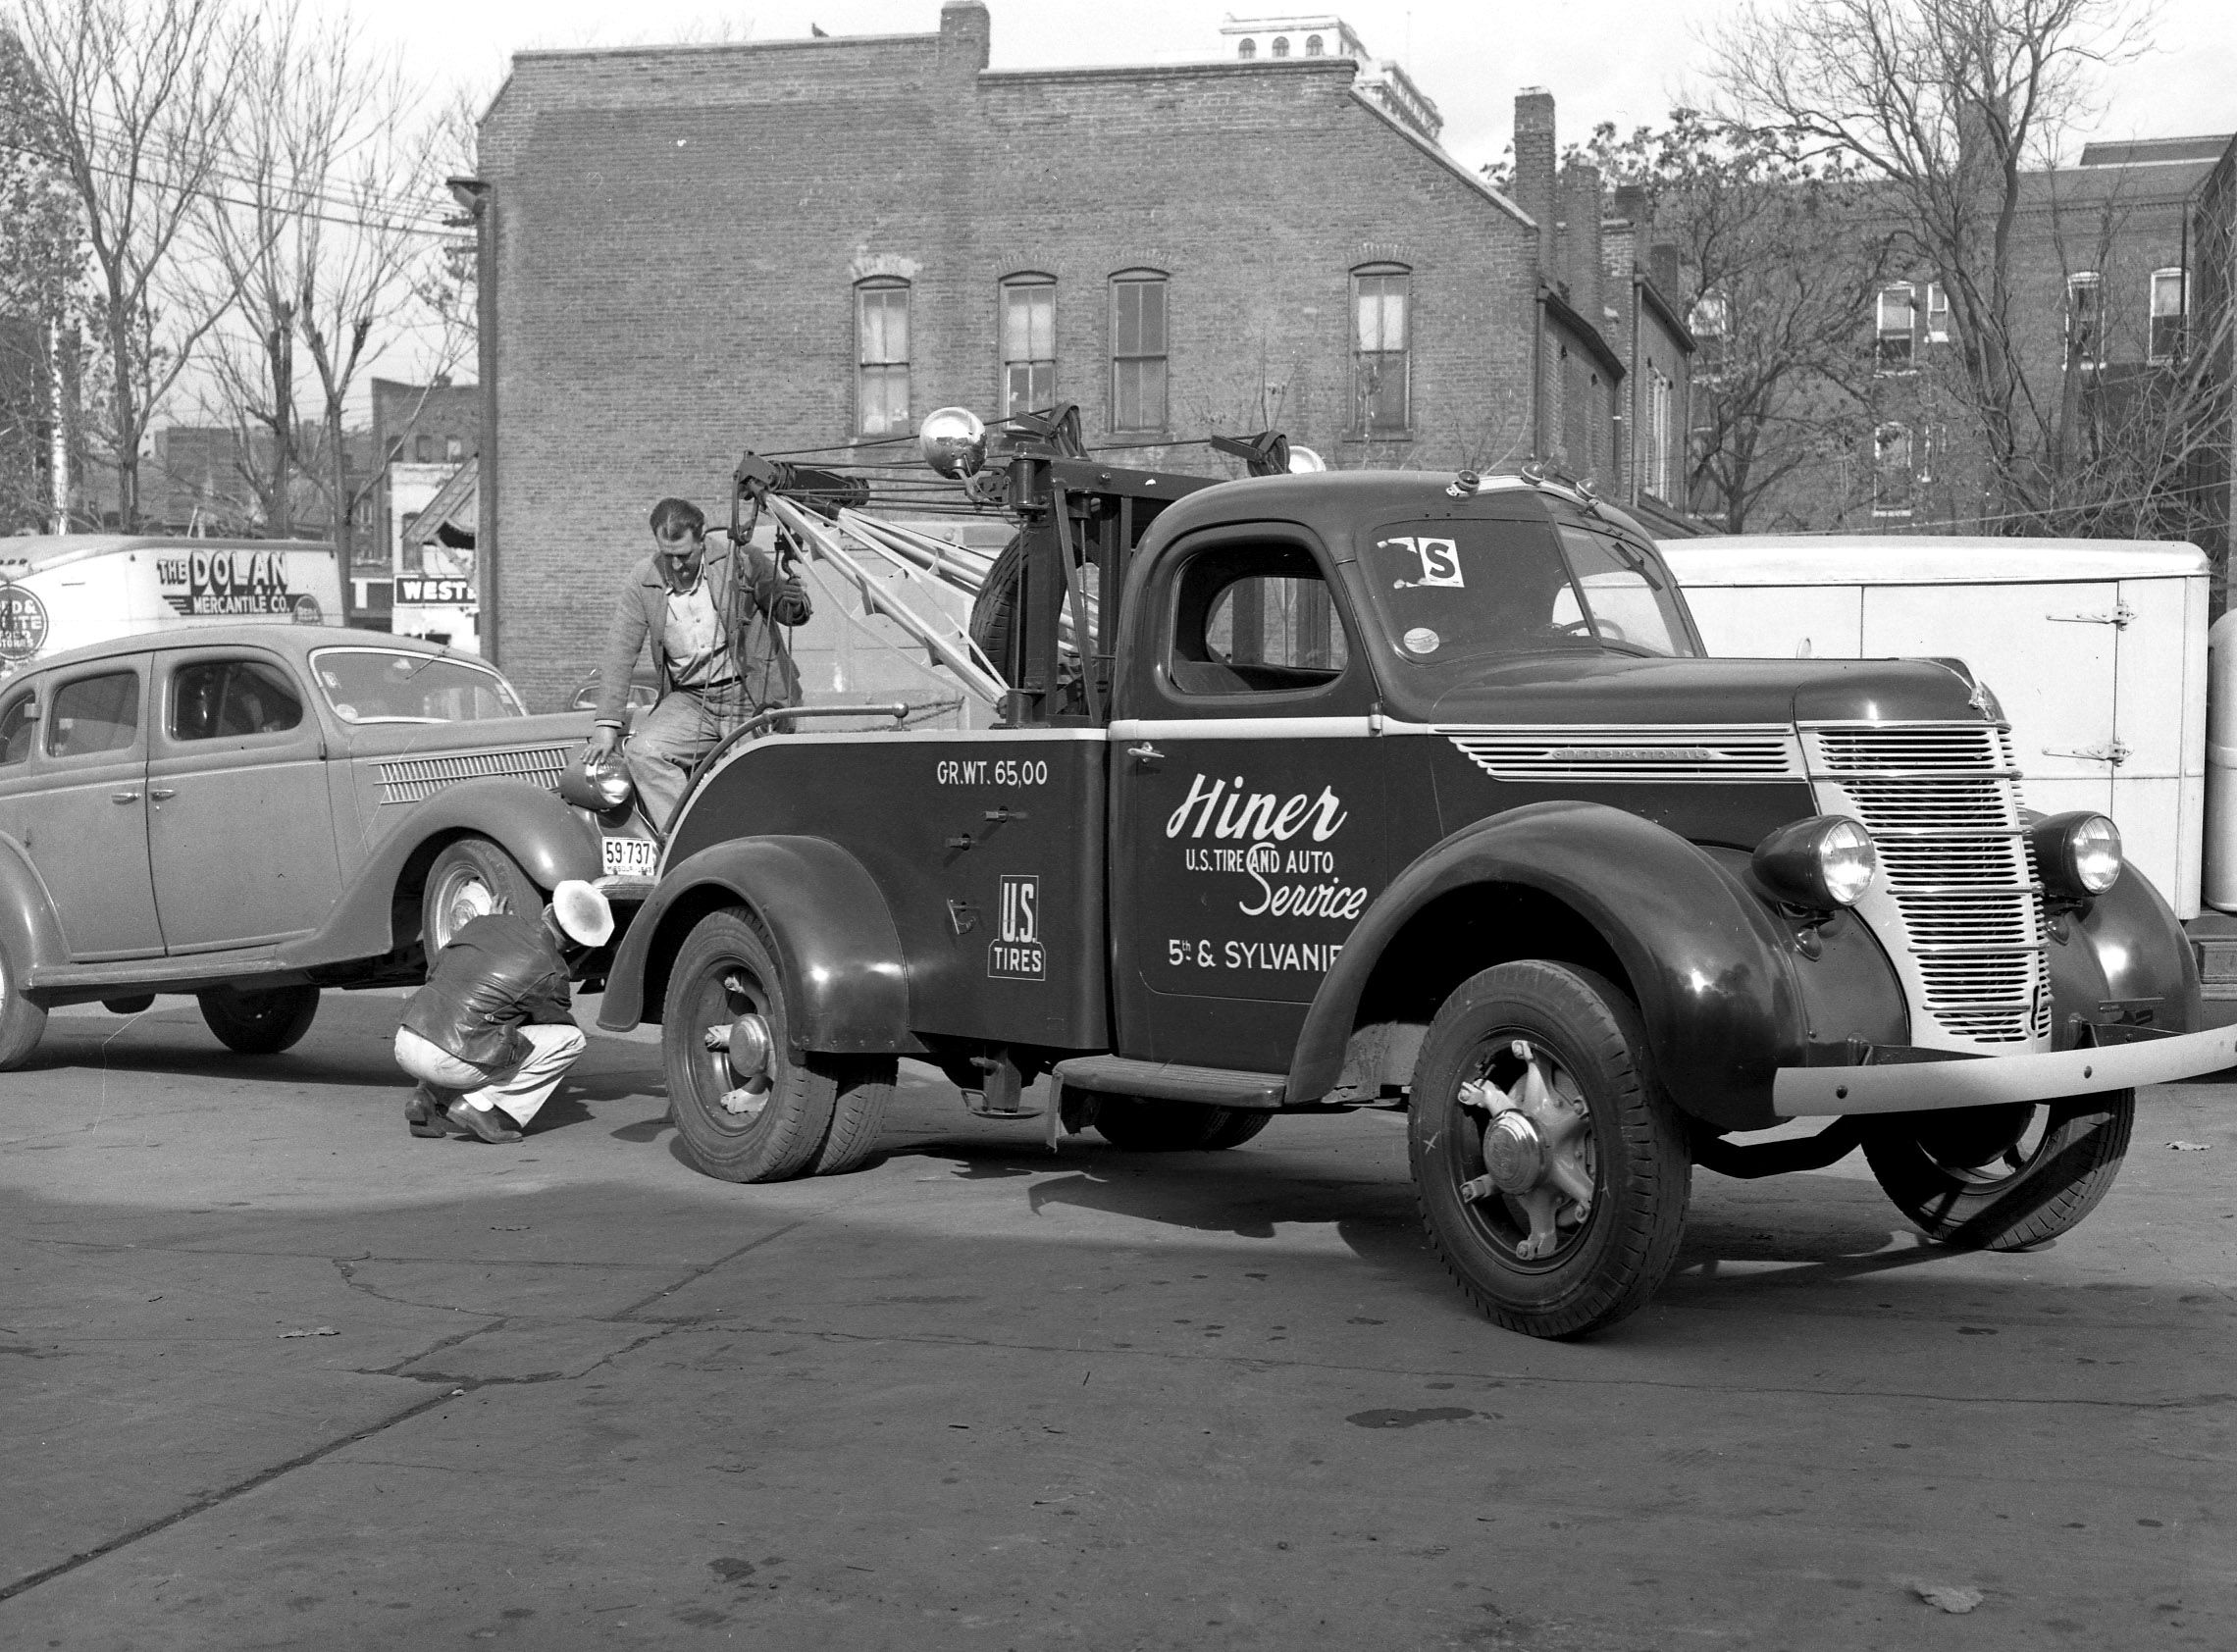 Hiner U.S. Tire & Auto Service, 1937 International Tow Truck, St ...